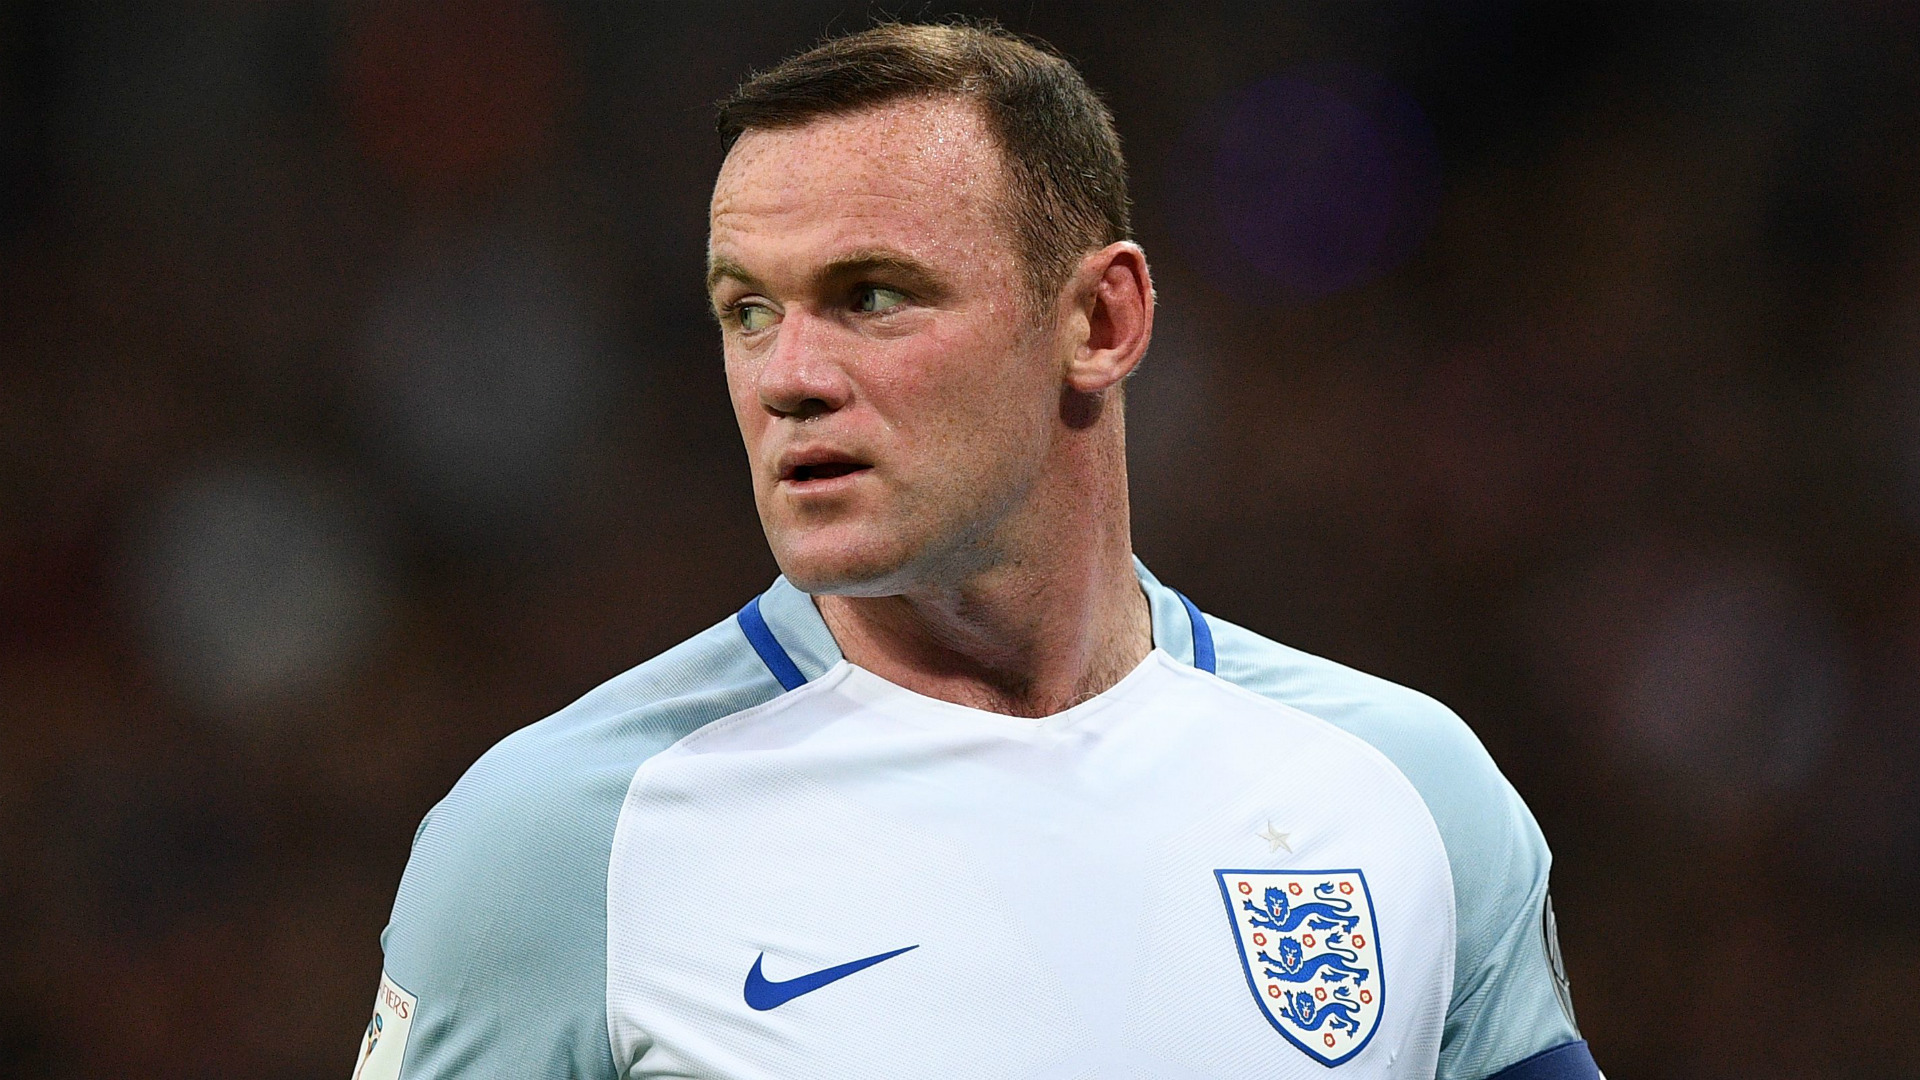 Wayne Rooney arrives at St George's ahead of England farewell appearance